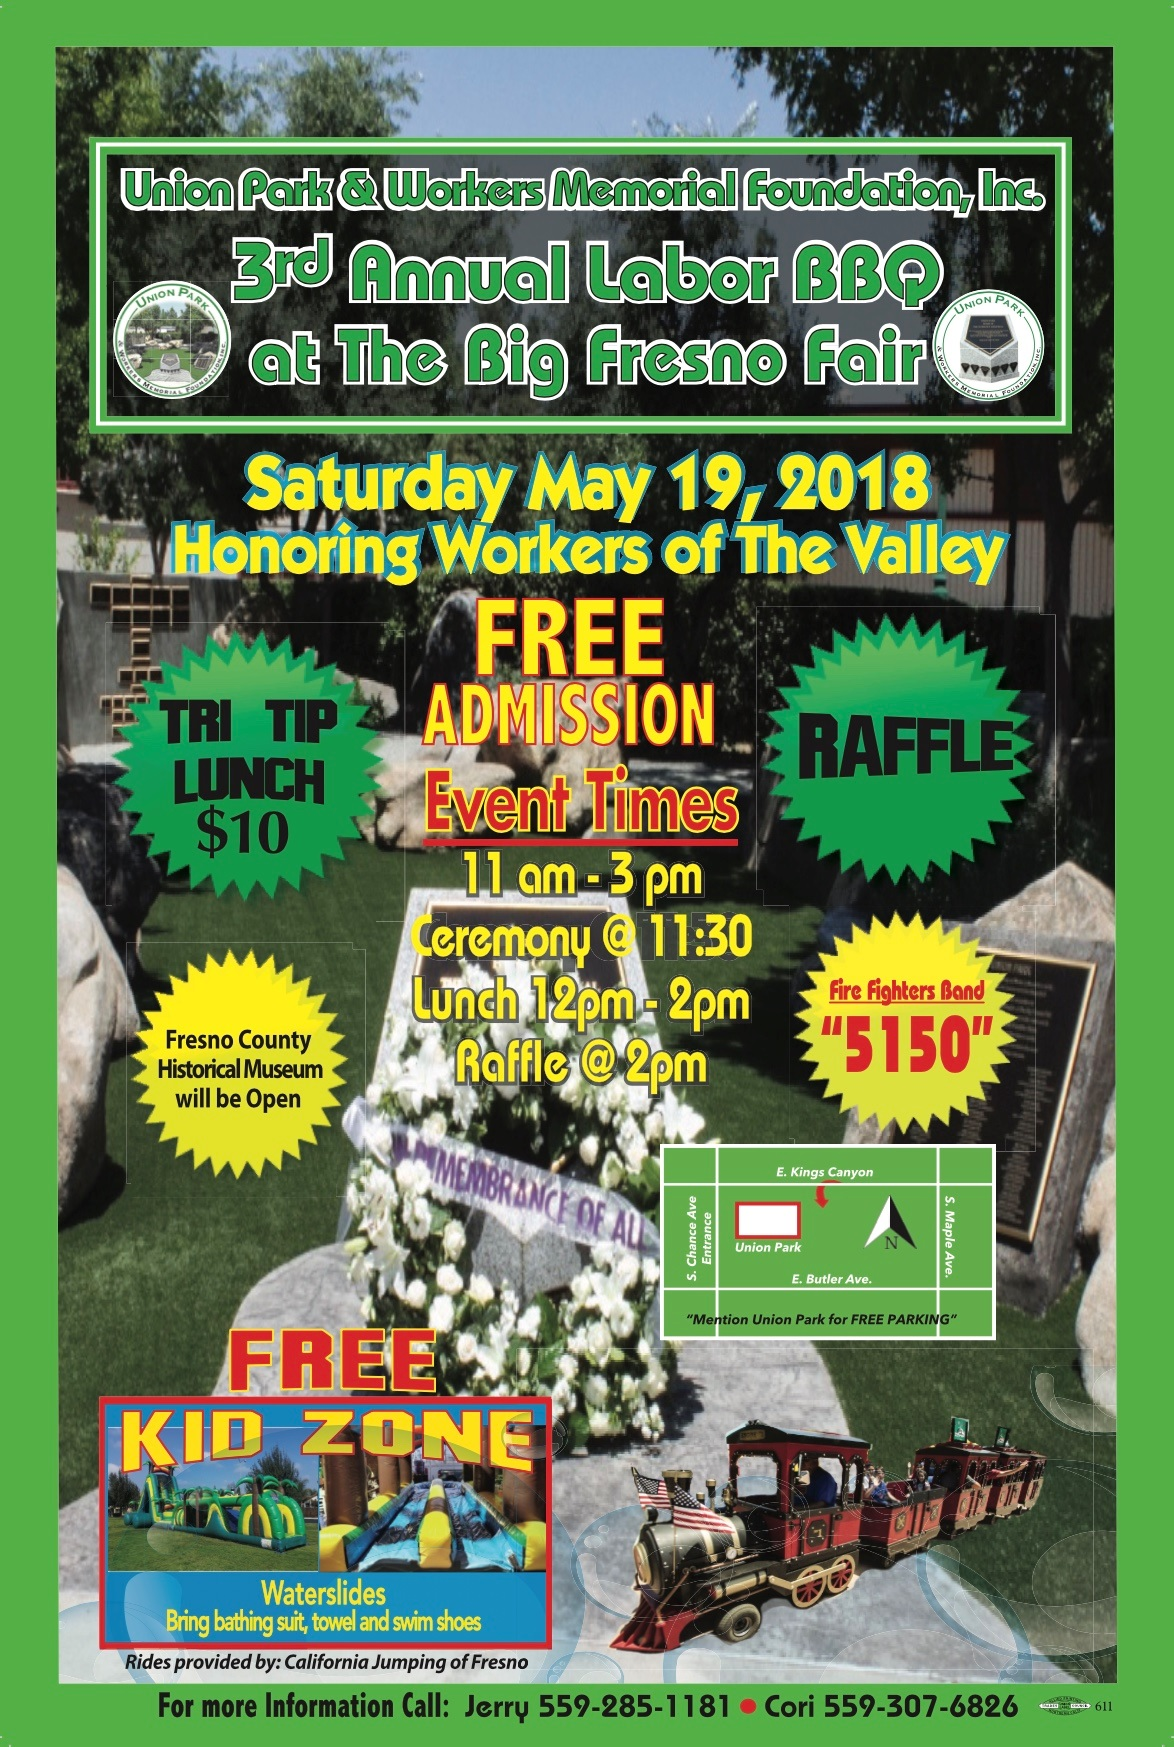 Union Park & Workers Memorial Foundation 3nd Annual Labor Picnic at The Big Fresno Fair